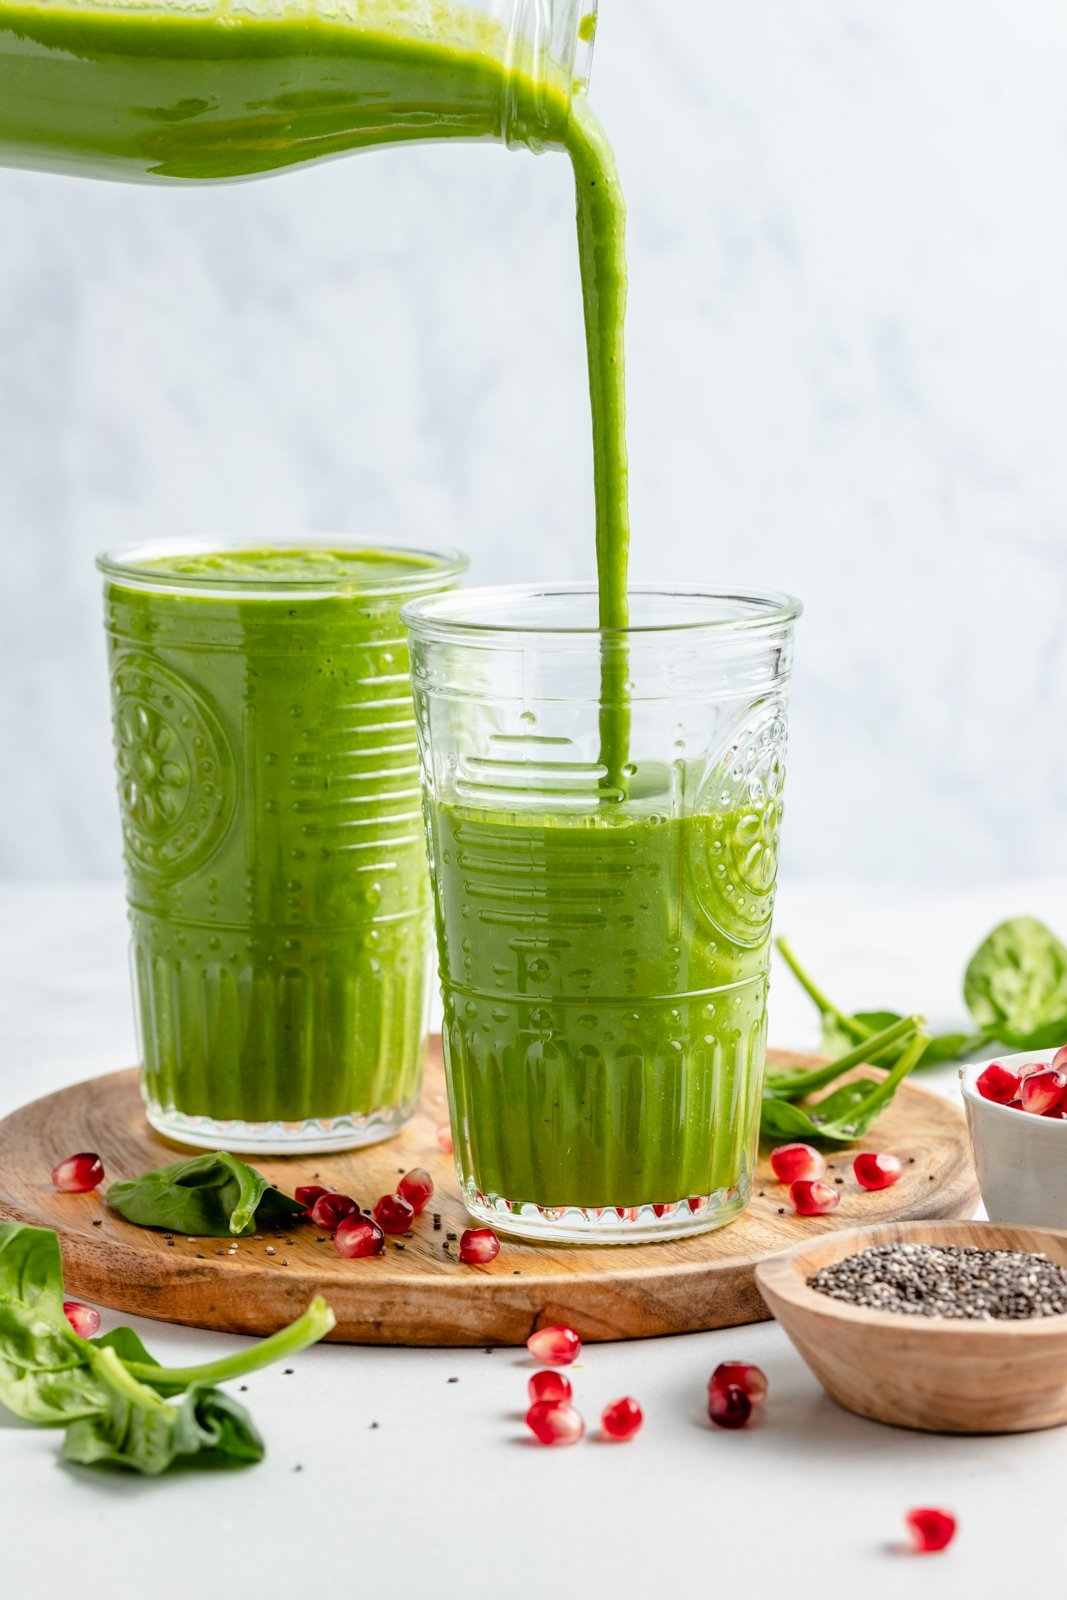 pouring an immune boosting smoothie into two glasses